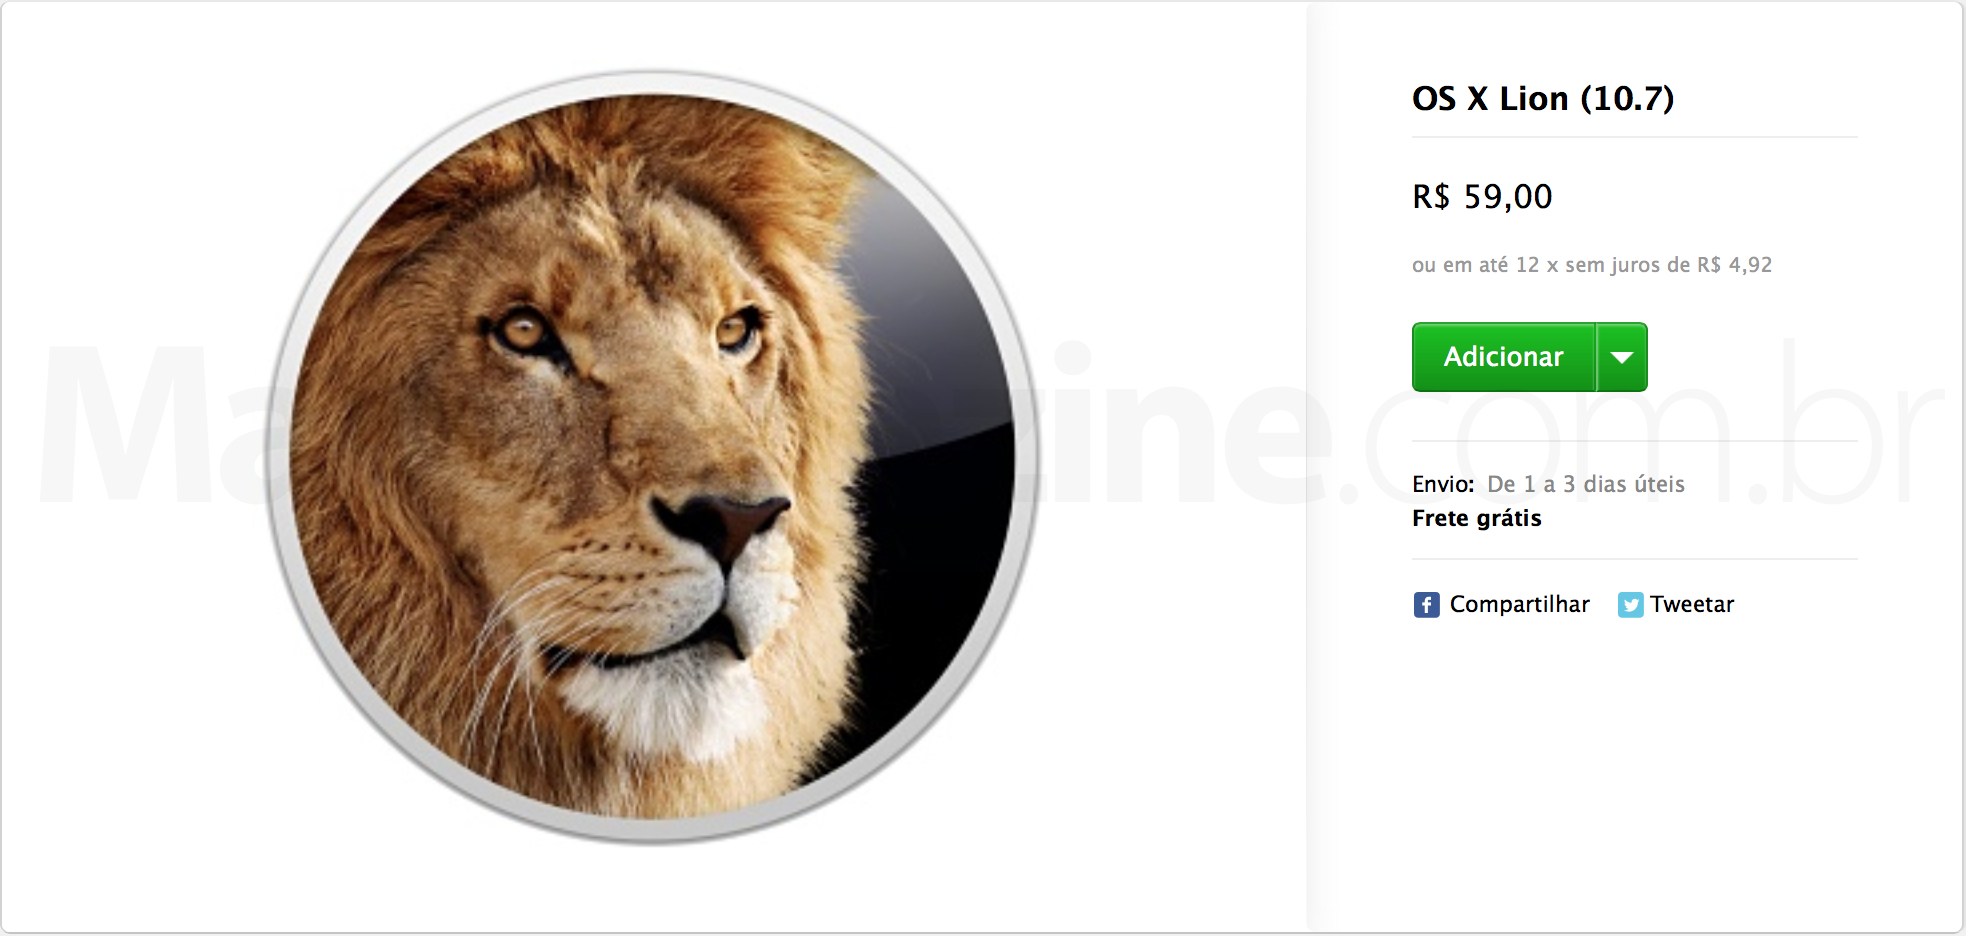 OS X Lion à venda na Apple Online Store